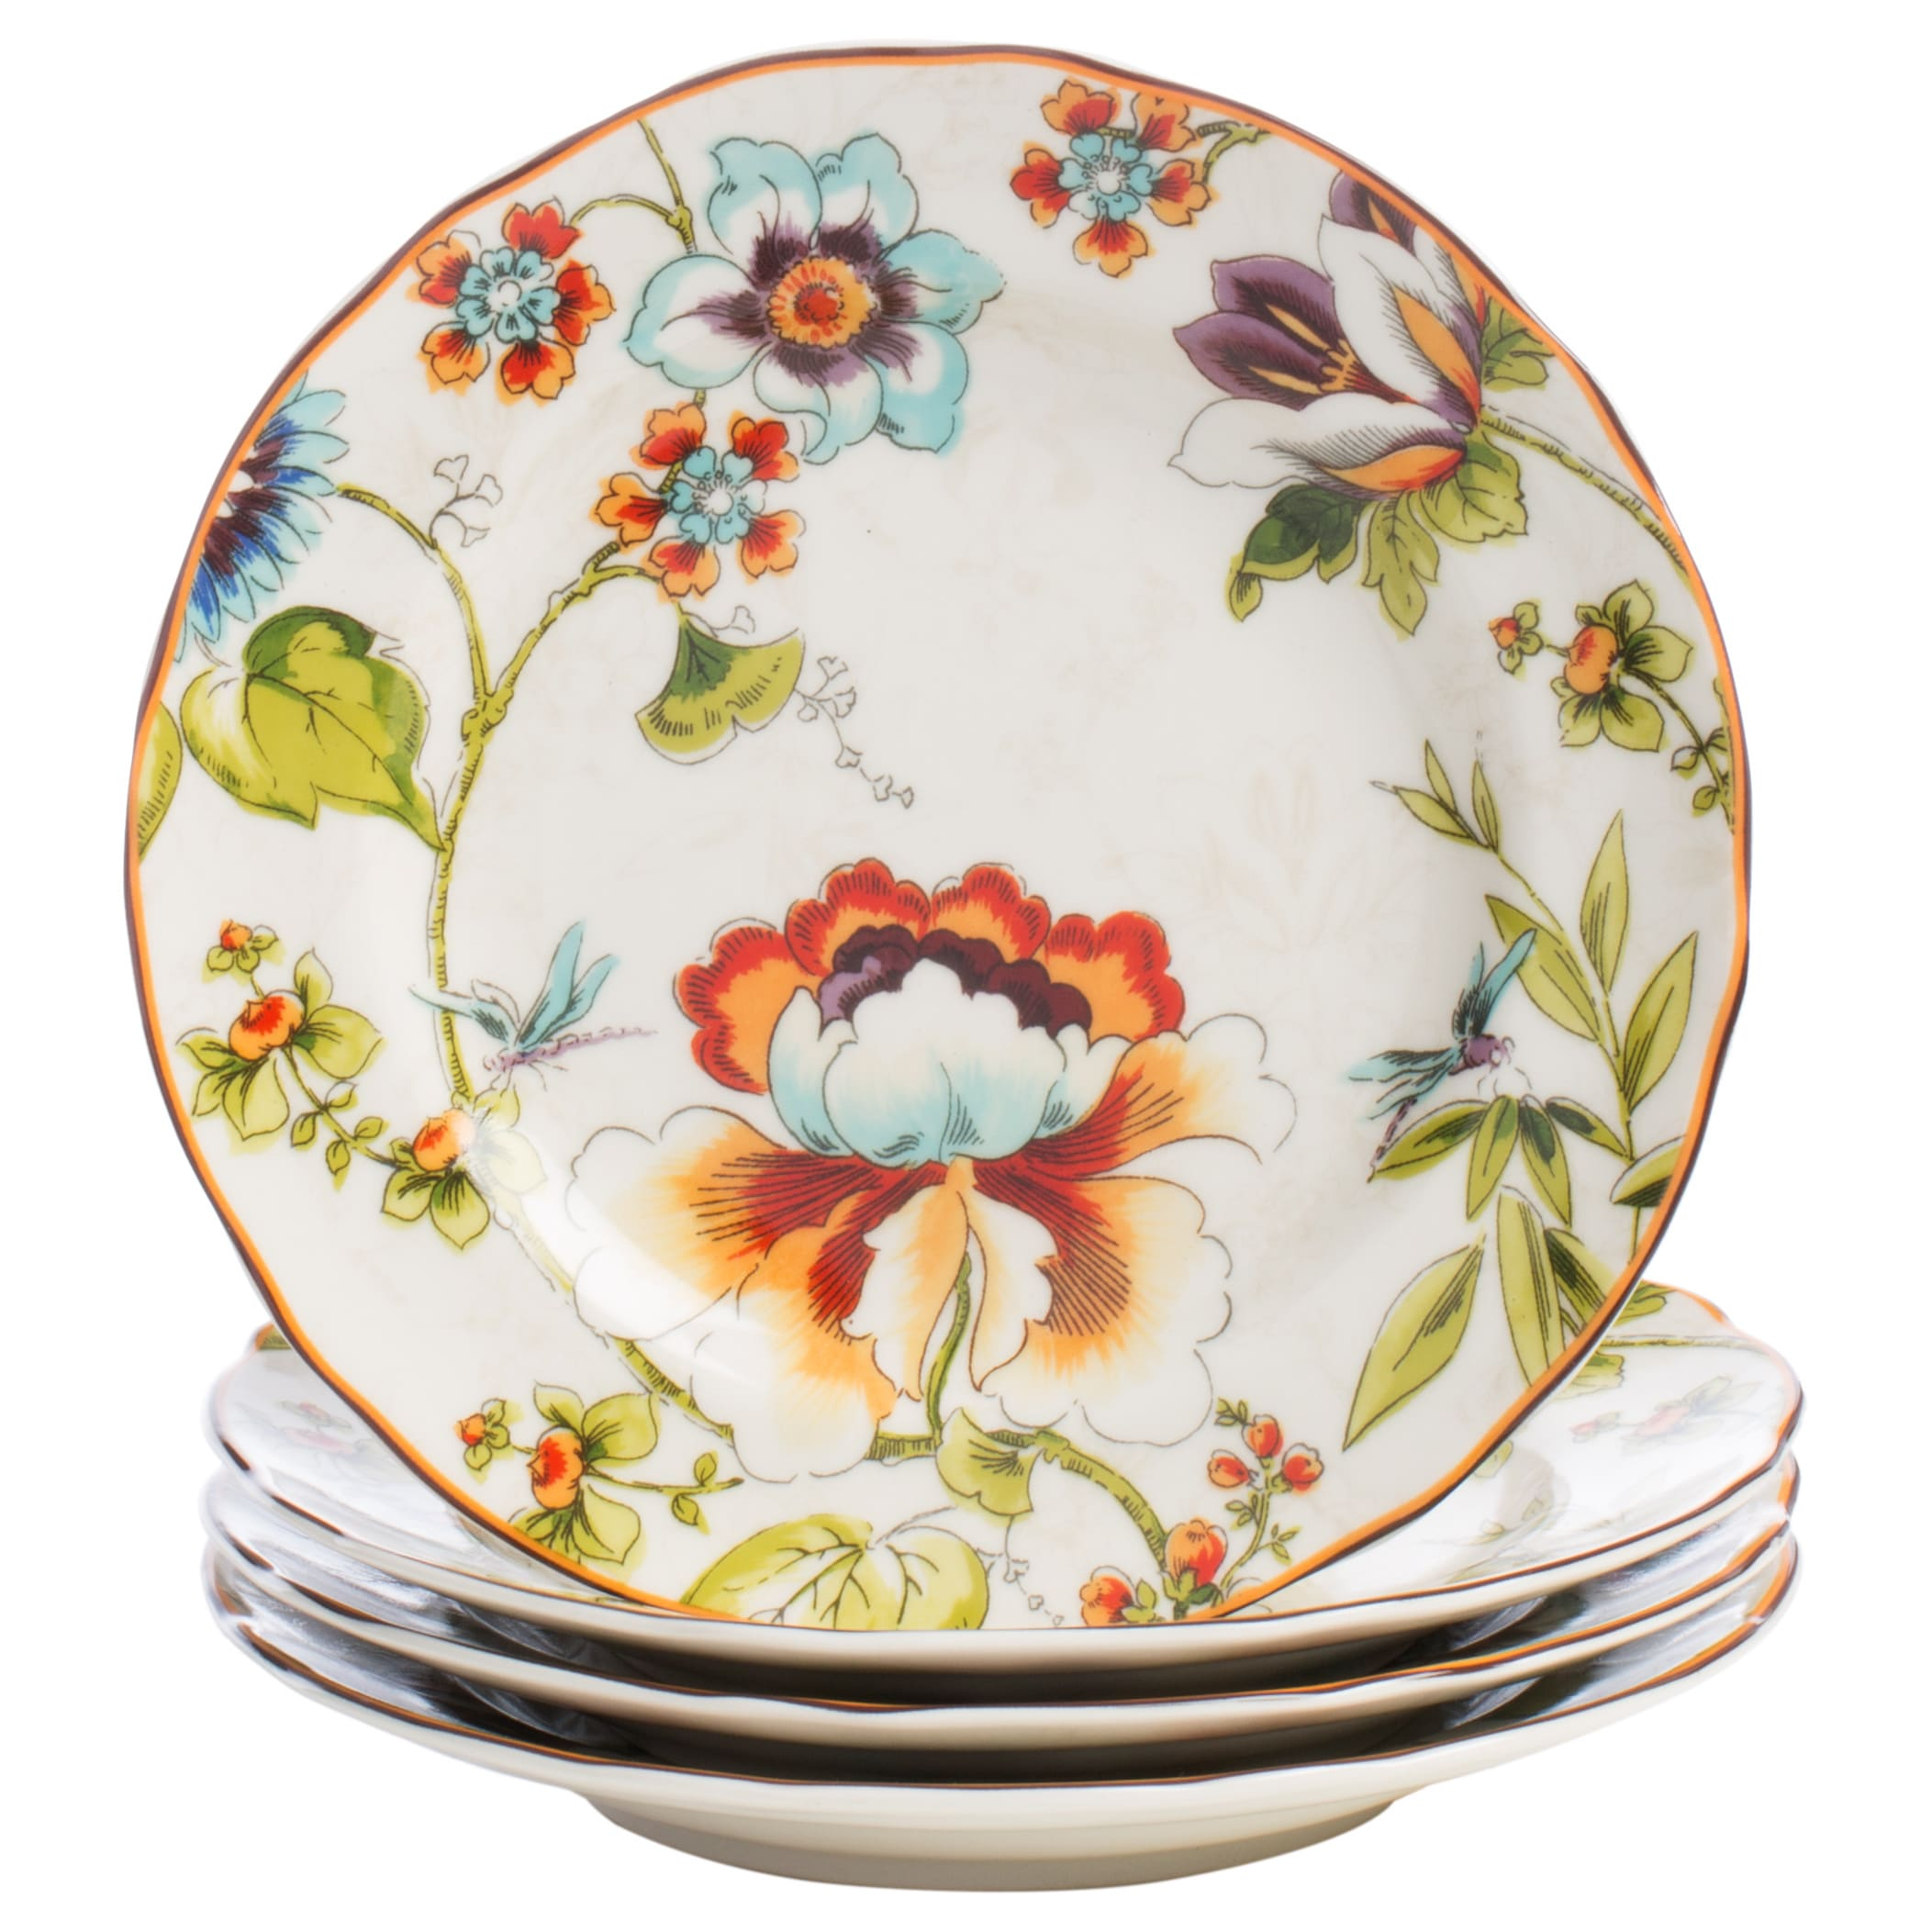 222 Fifth Bella Vista 16-piece Floral Dinnerware Set - Free Shipping Today - Overstock - 16770819  sc 1 st  Overstock & 222 Fifth Bella Vista 16-piece Floral Dinnerware Set - Free Shipping ...